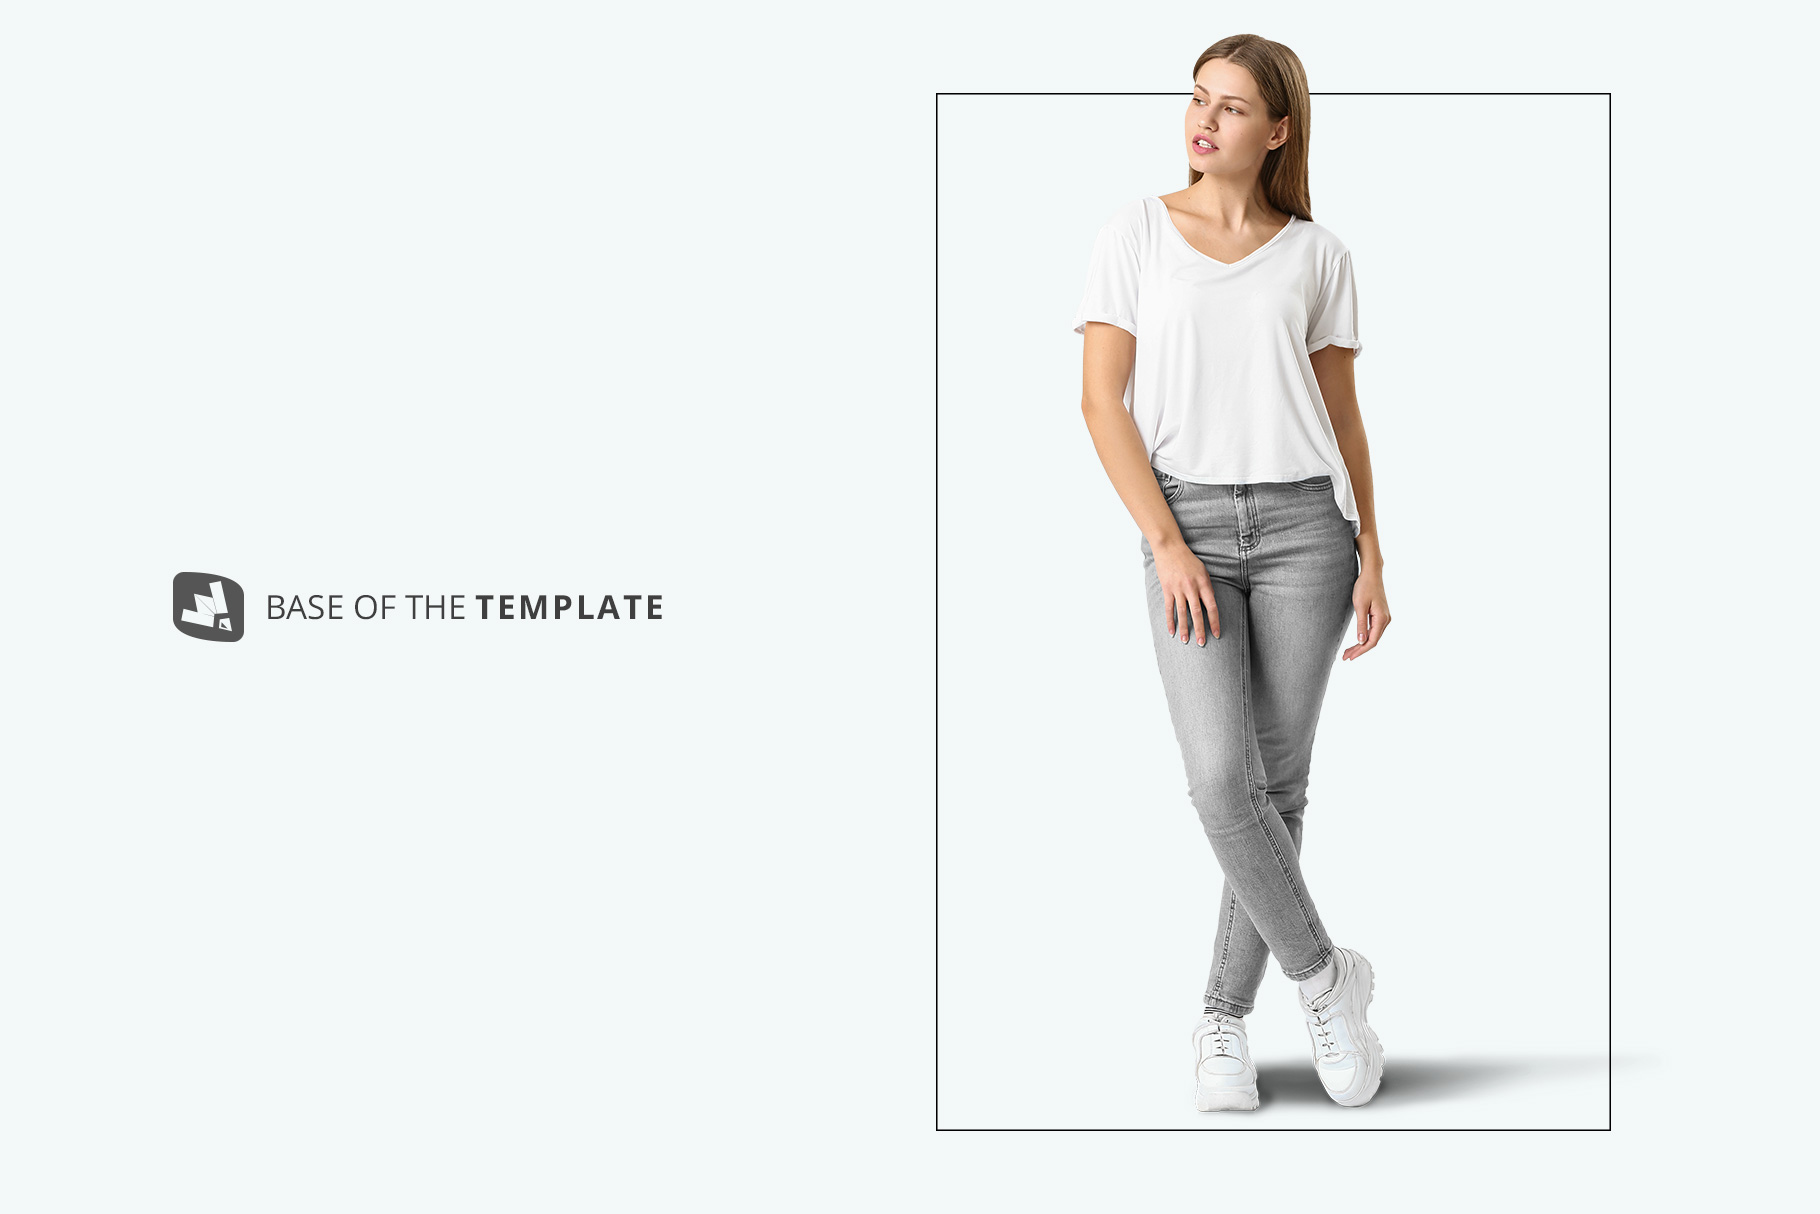 base image of the casual outfit with female model mockup